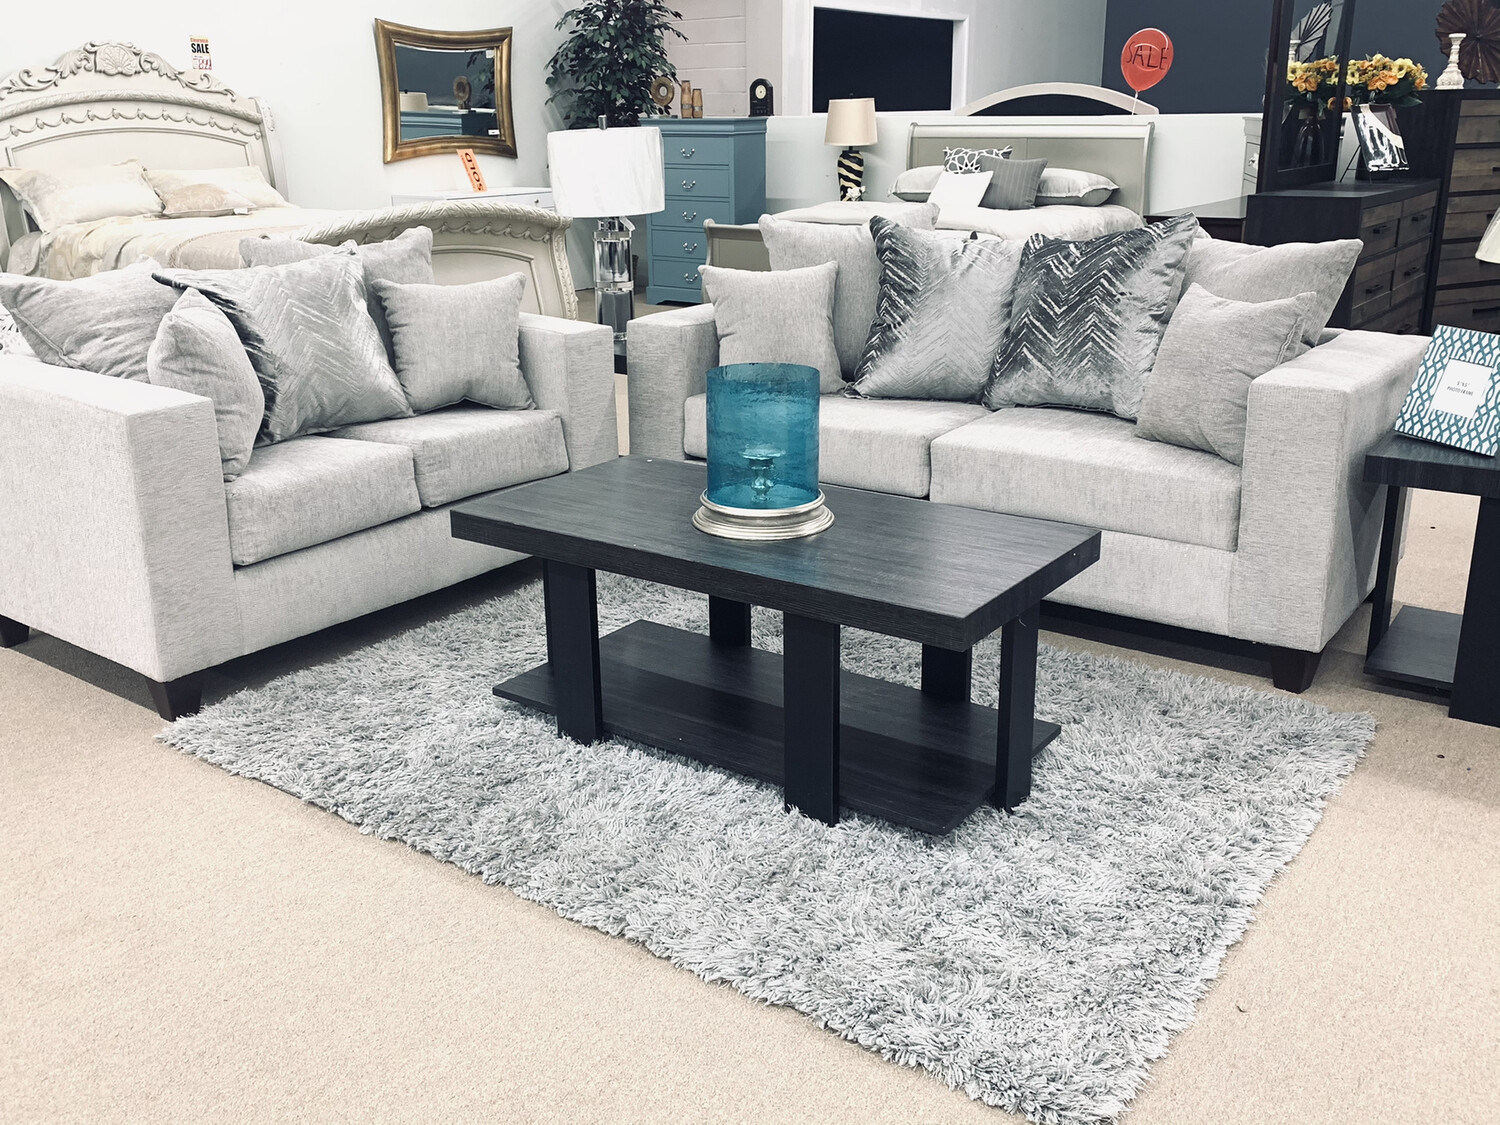 Dove Sofa & Loveseat *EARLY BLACK FRIDAY SALE*